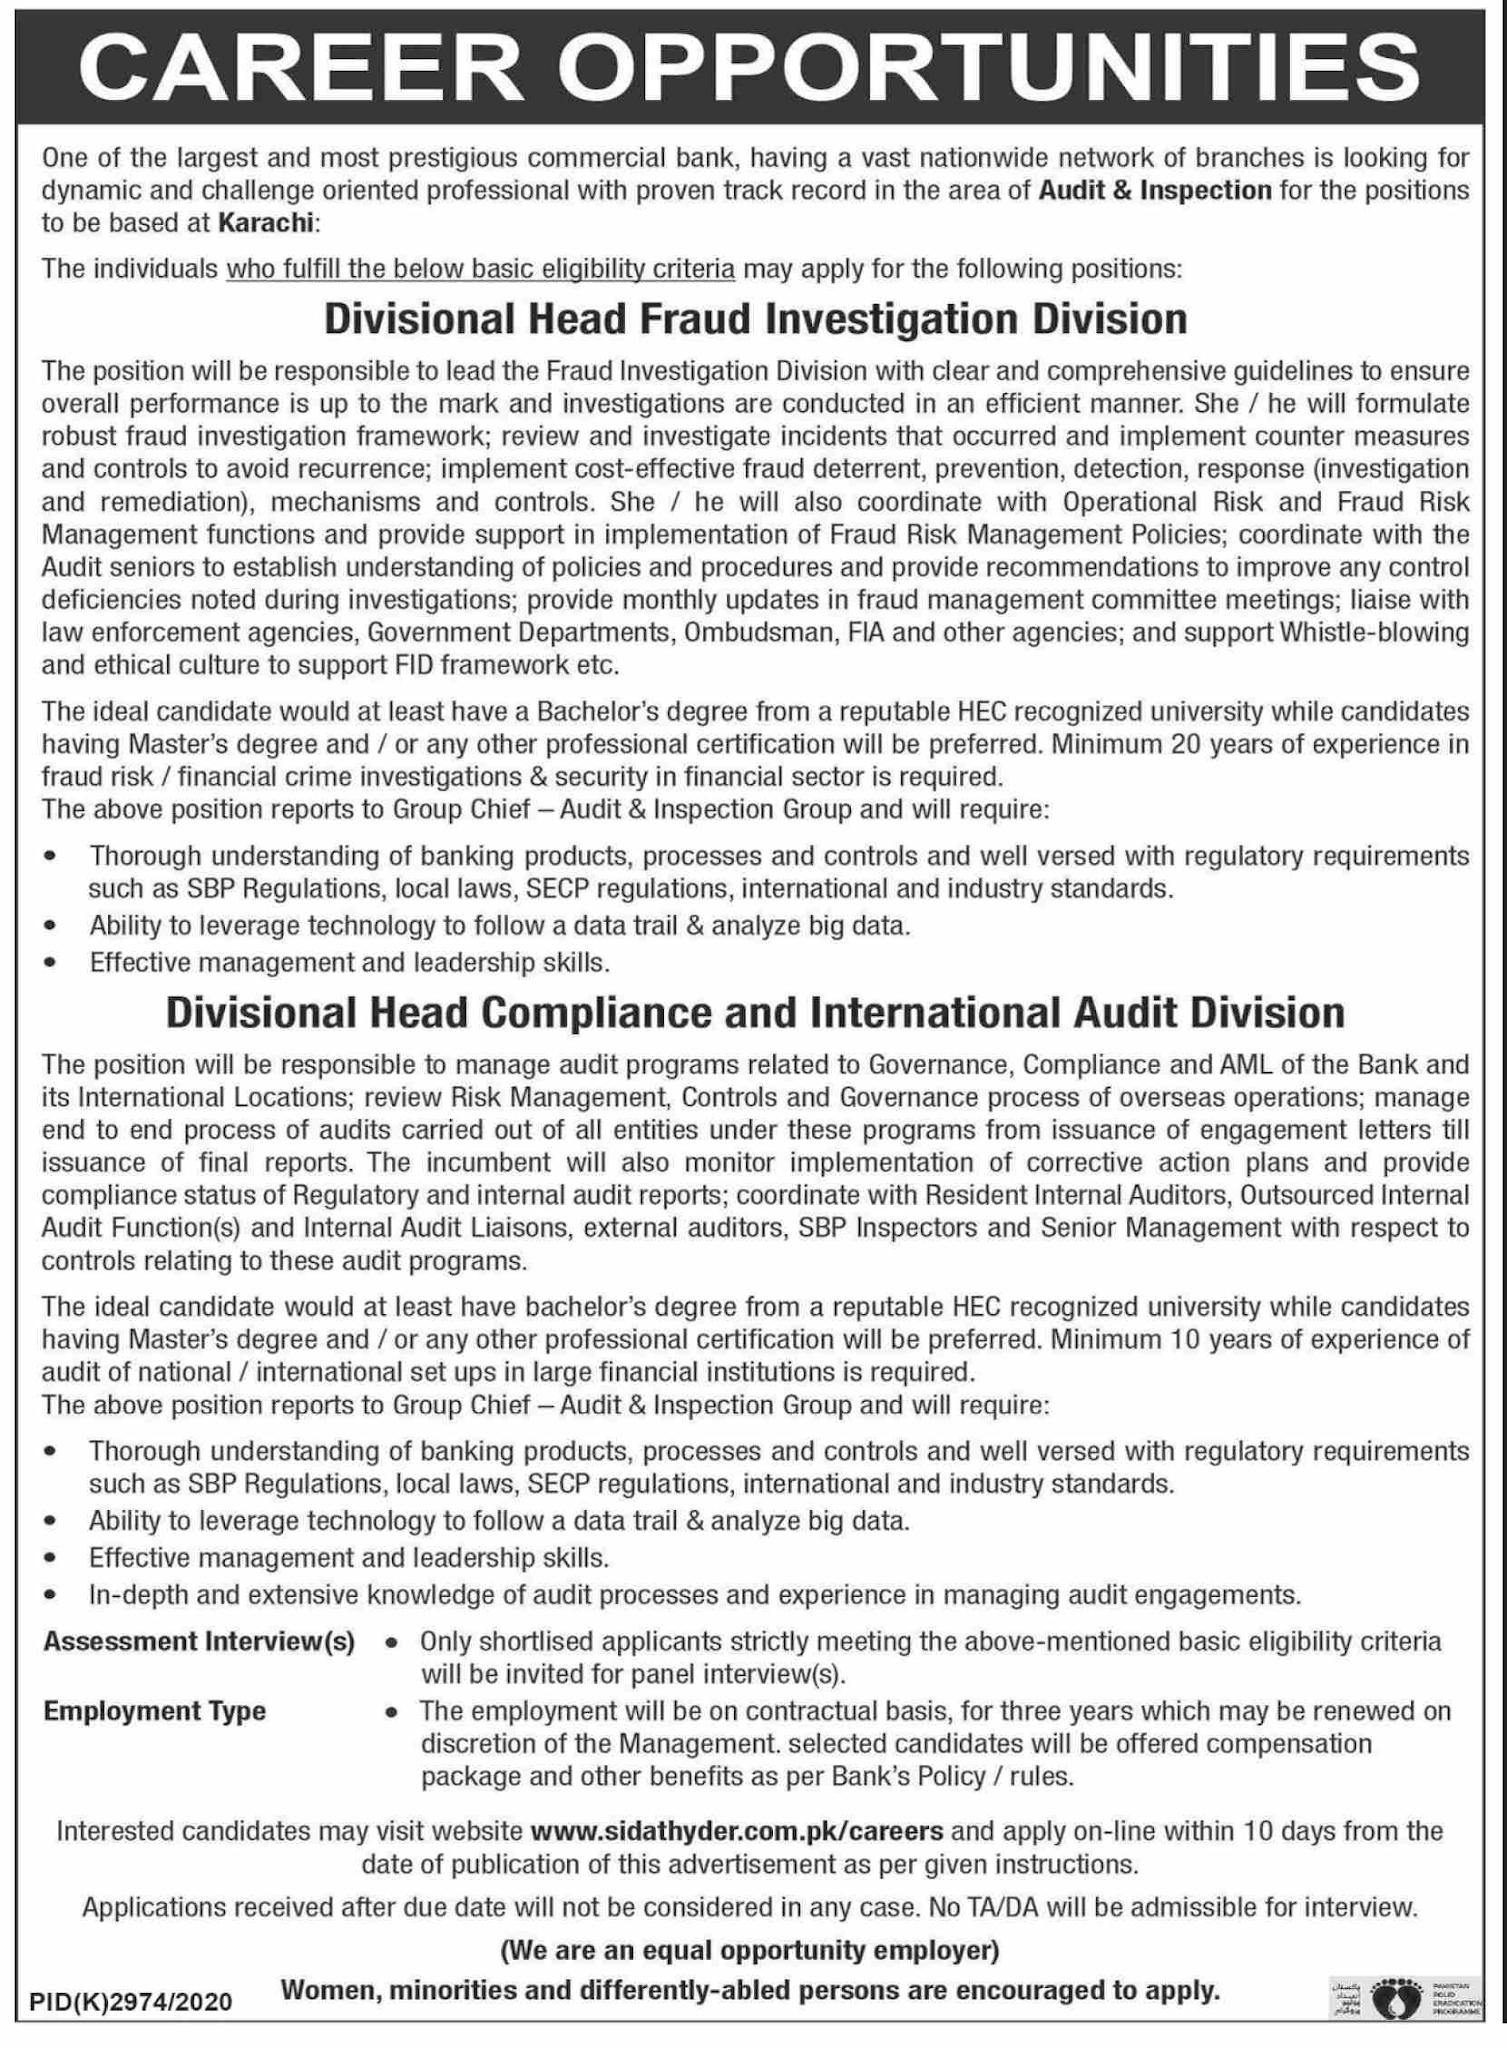 This page is about Largest and Most Prestigious Commercial Bank Jobs May 2021 Latest Advertisment. Largest and Most Prestigious Commercial Bank invites applications for the posts announced on a contact / permanent basis from suitable candidates for the following positions such as Divisional Head Fraud Investigation Division, Divisional Head Compliance and International Audit Division. These vacancies are published in Dawn Newspaper, one of the best News paper of Pakistan. This advertisement has pulibhsed on 03 May 2021 and Last Date to apply is 12 May 2021.